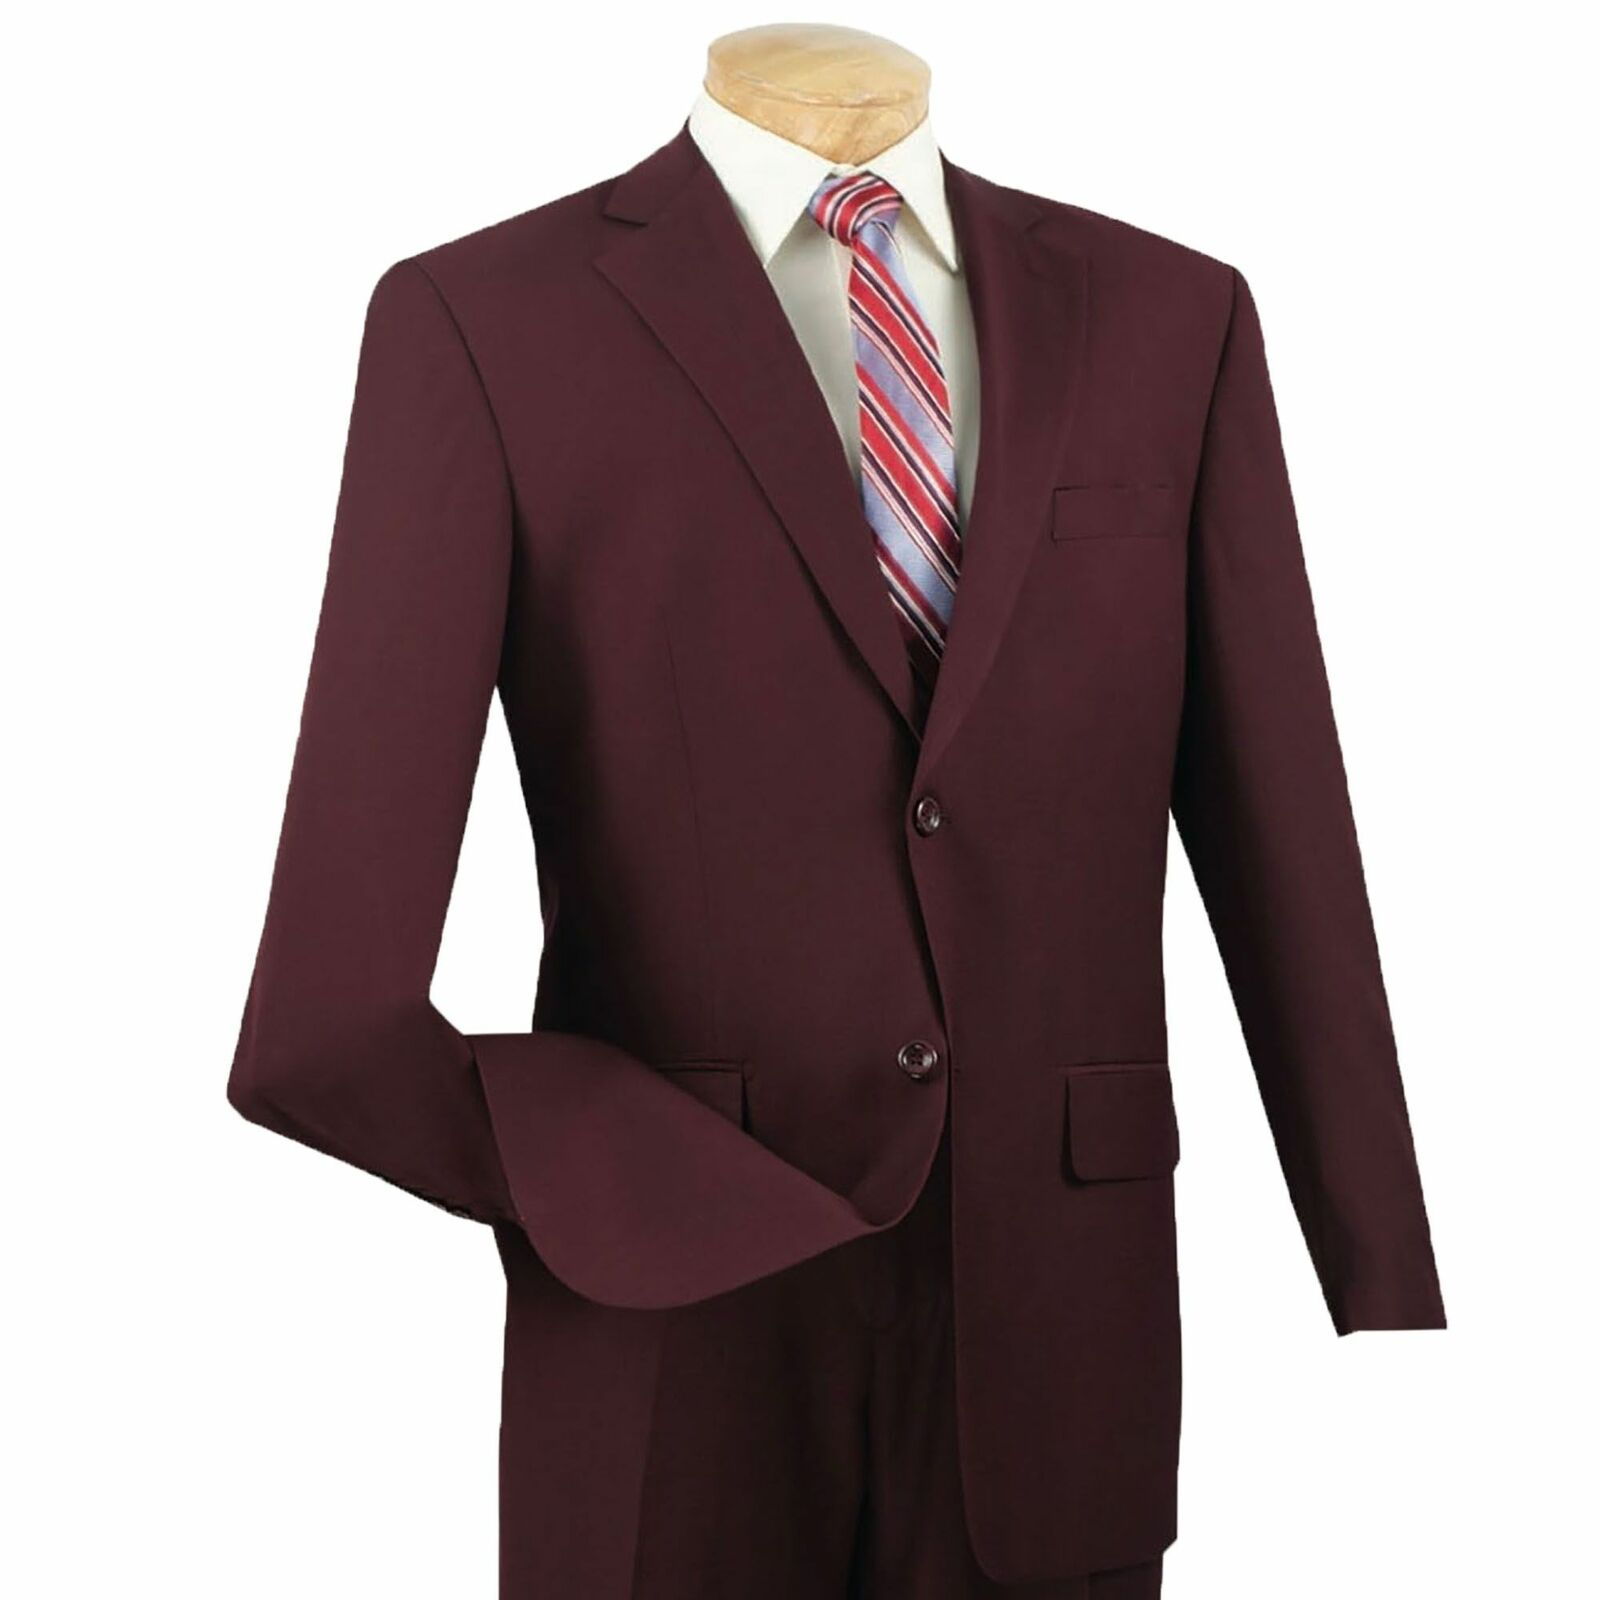 Vinci Men's Burgundy Textured Solid 2 Button Classic Fit Business Suit